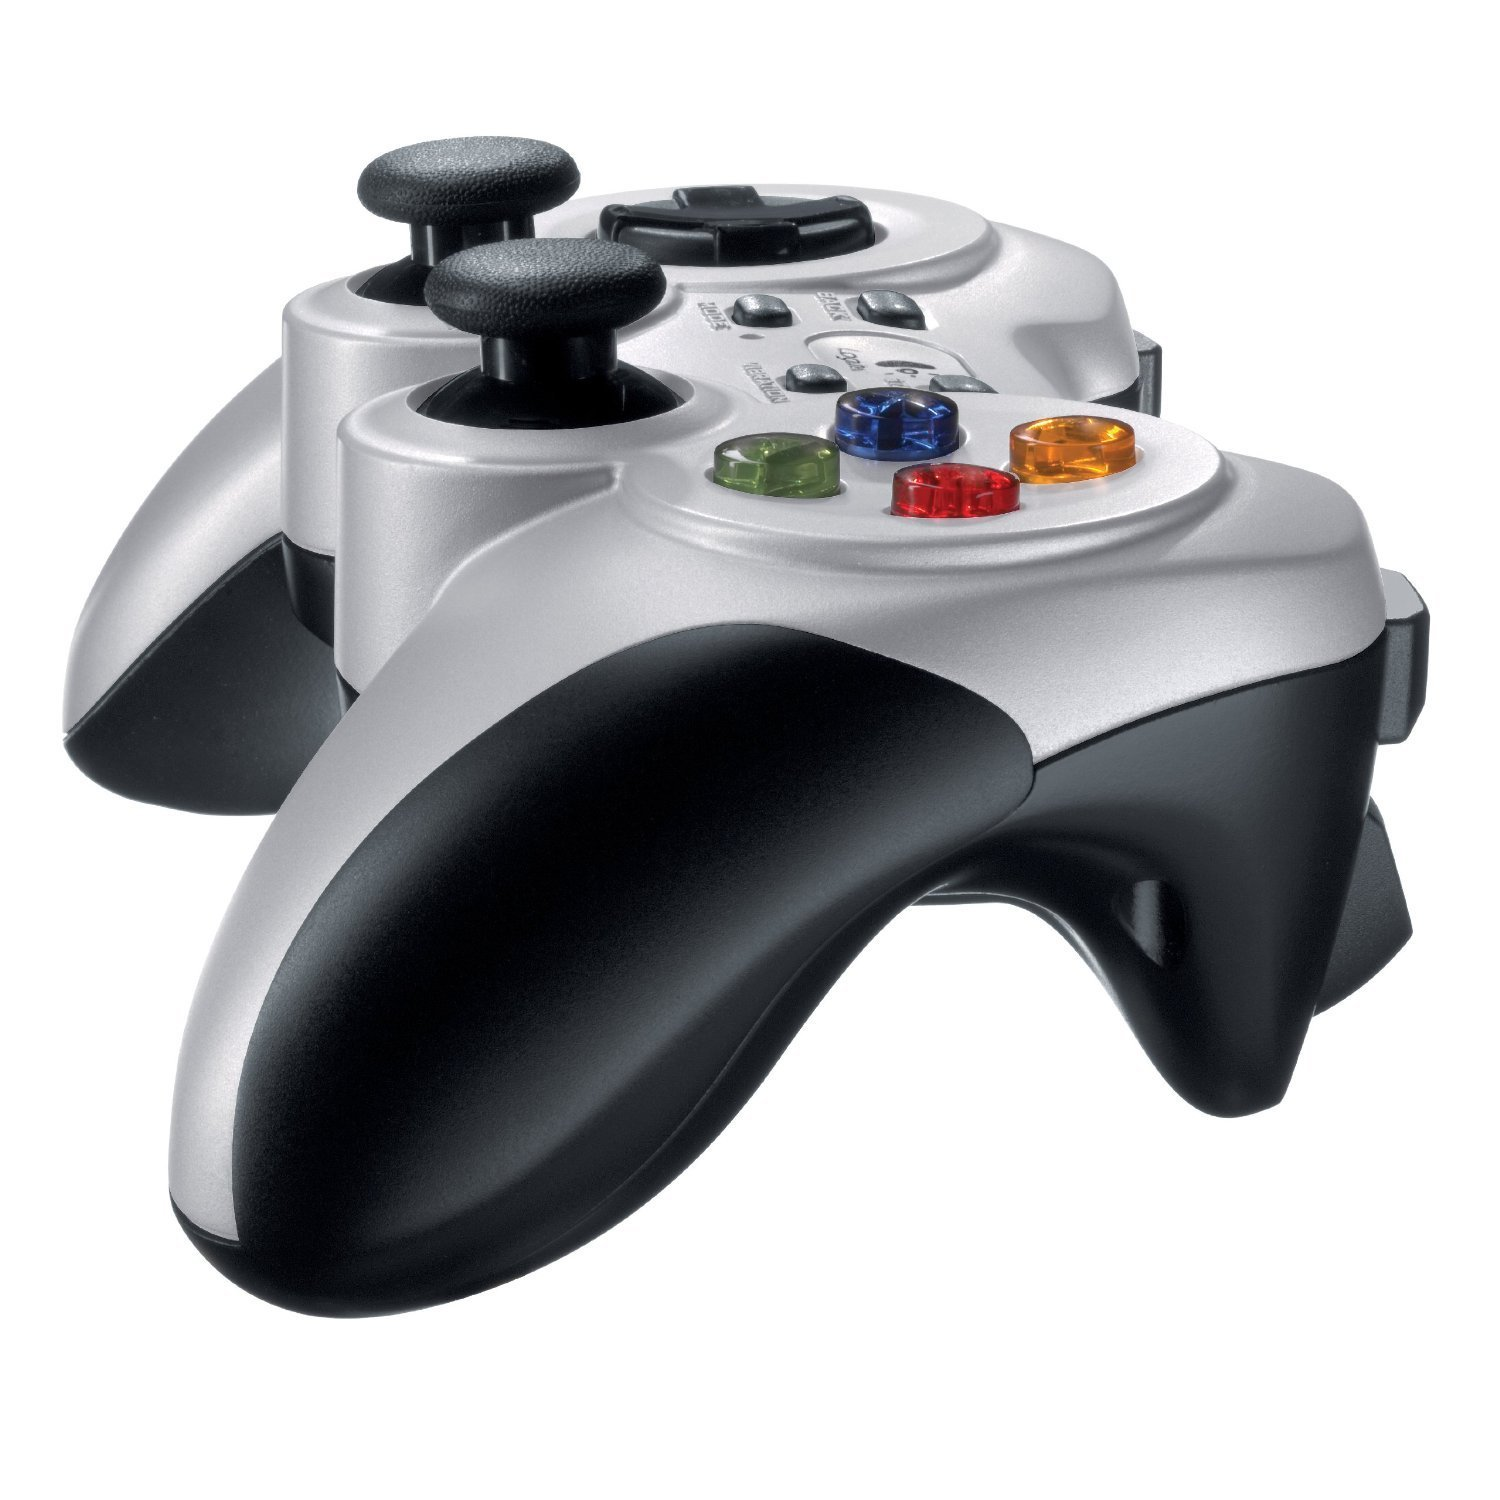 Logitech-Gamepad-Wired-Wireless-Gaming-Controller-All-Model-For-PC-Android-TV-VS thumbnail 10